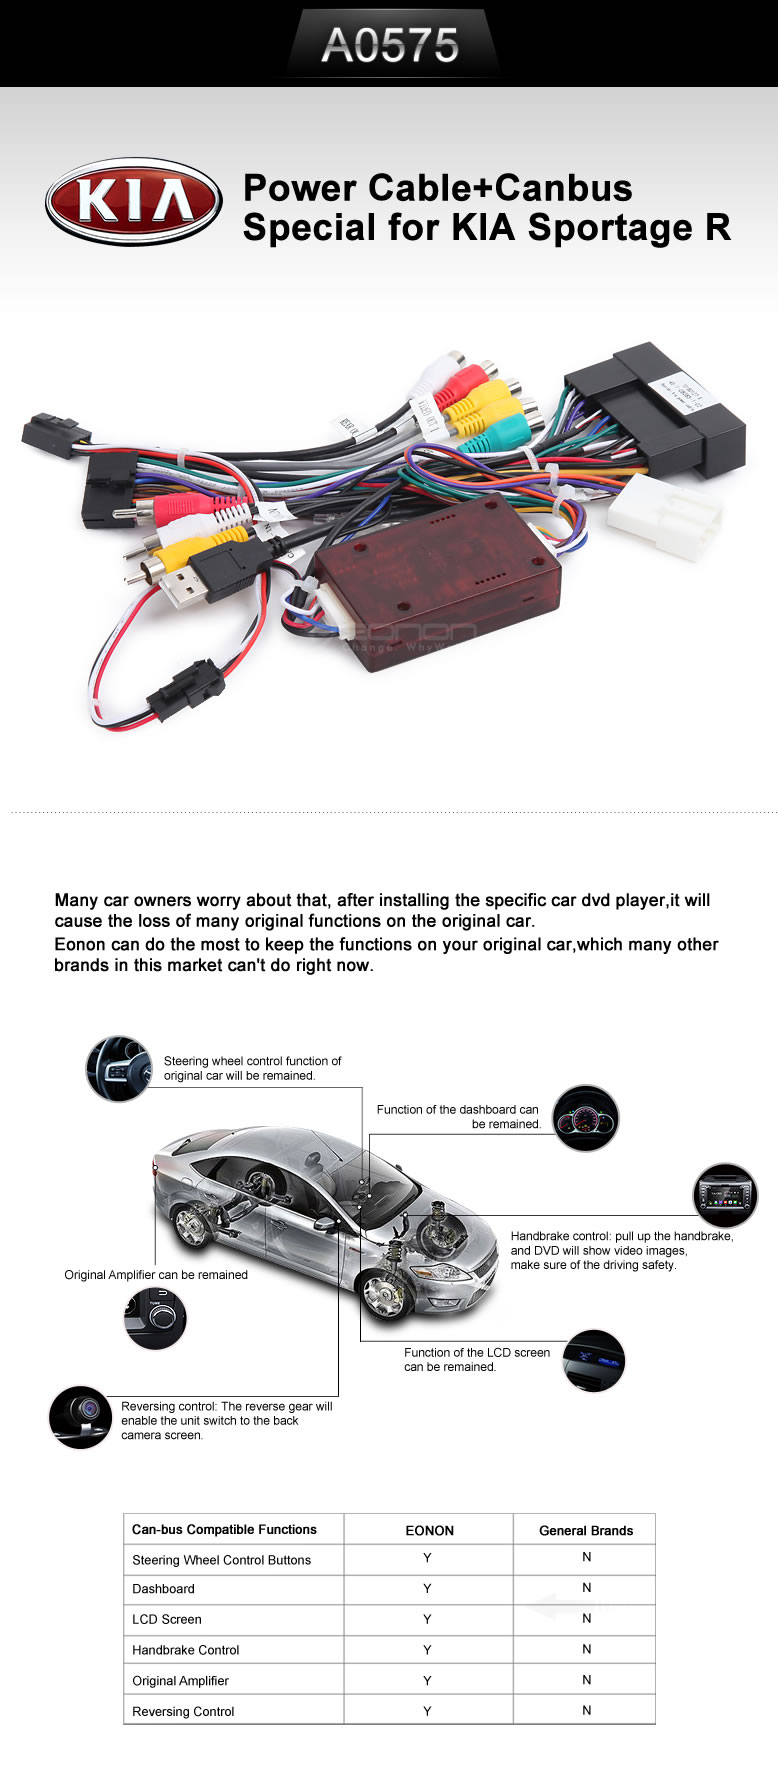 Eonon A0575 Specific Kia Sportage R Canbus And Power Cable Vauxhall Can Bus Wiring Cablecanbus For